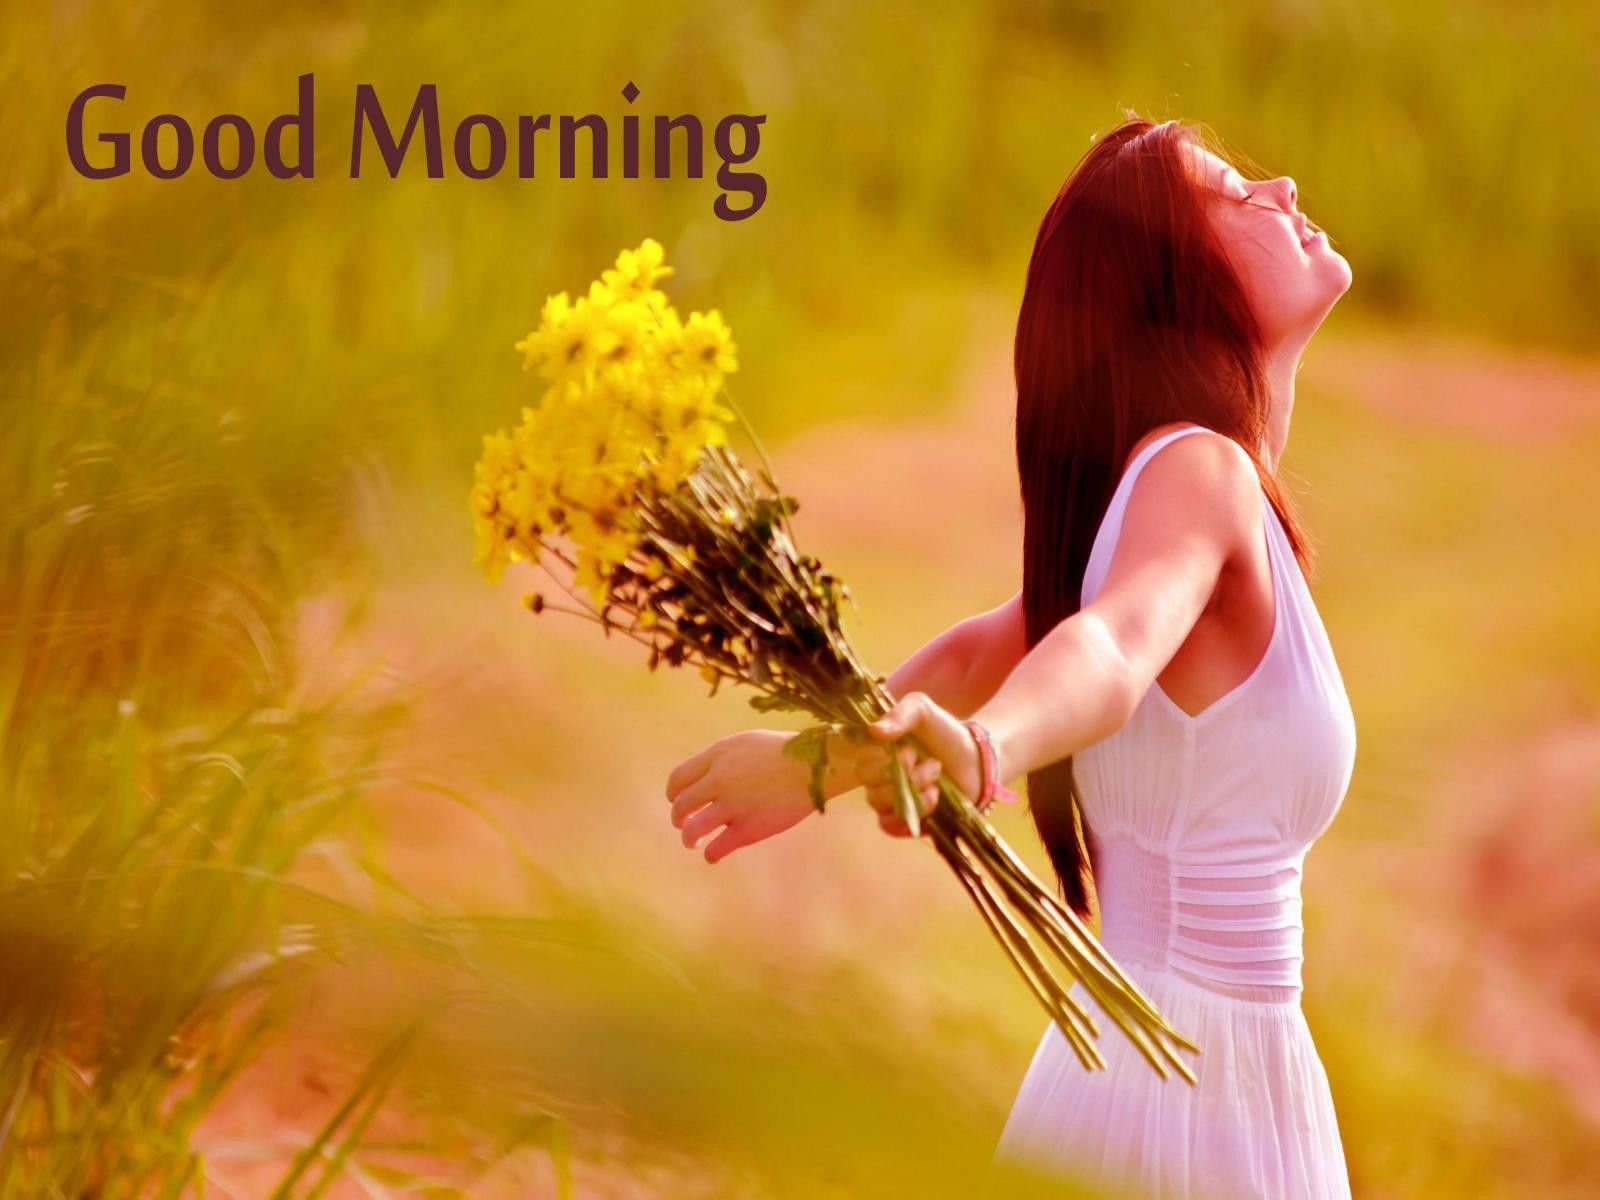 Beautiful Gorgeous Girls Good Morning Hd Wallpaper Collection S Good Morning Wallpaper Good Morning Cards Morning Images